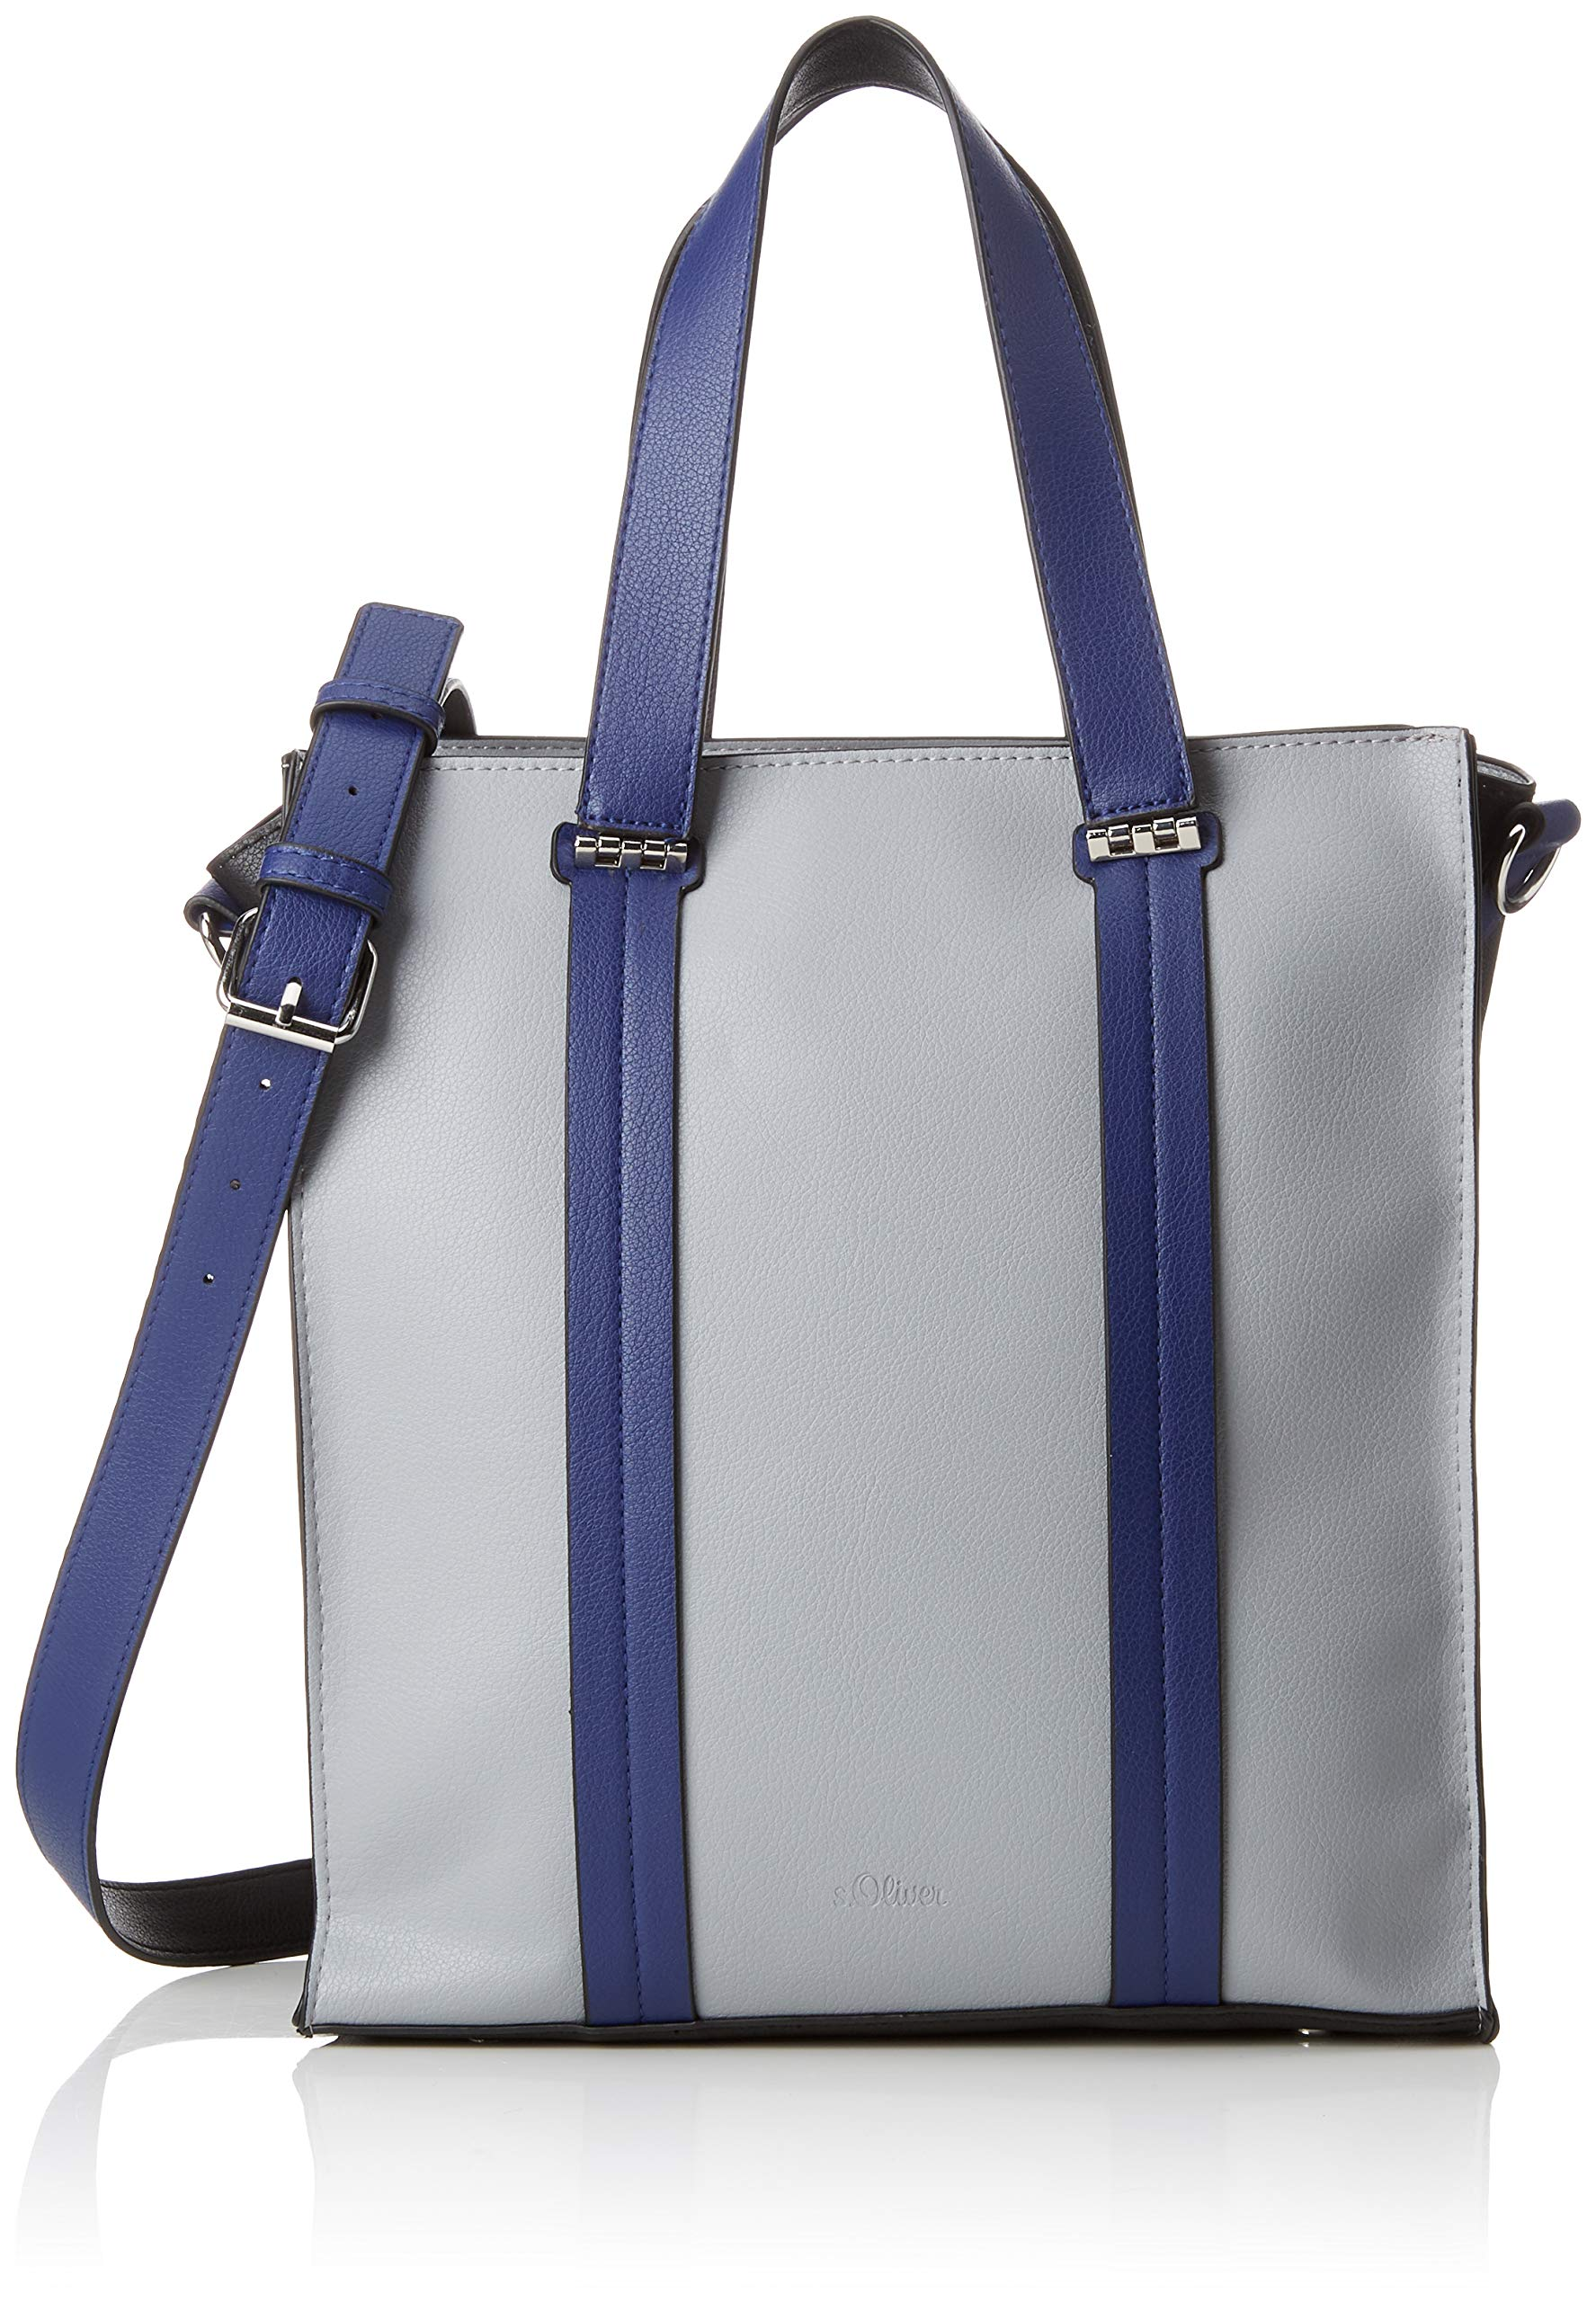 H T ShopperCartable oliverbags Grey14x26x30 Cmb S FemmeGrislight X mNywOv80Pn